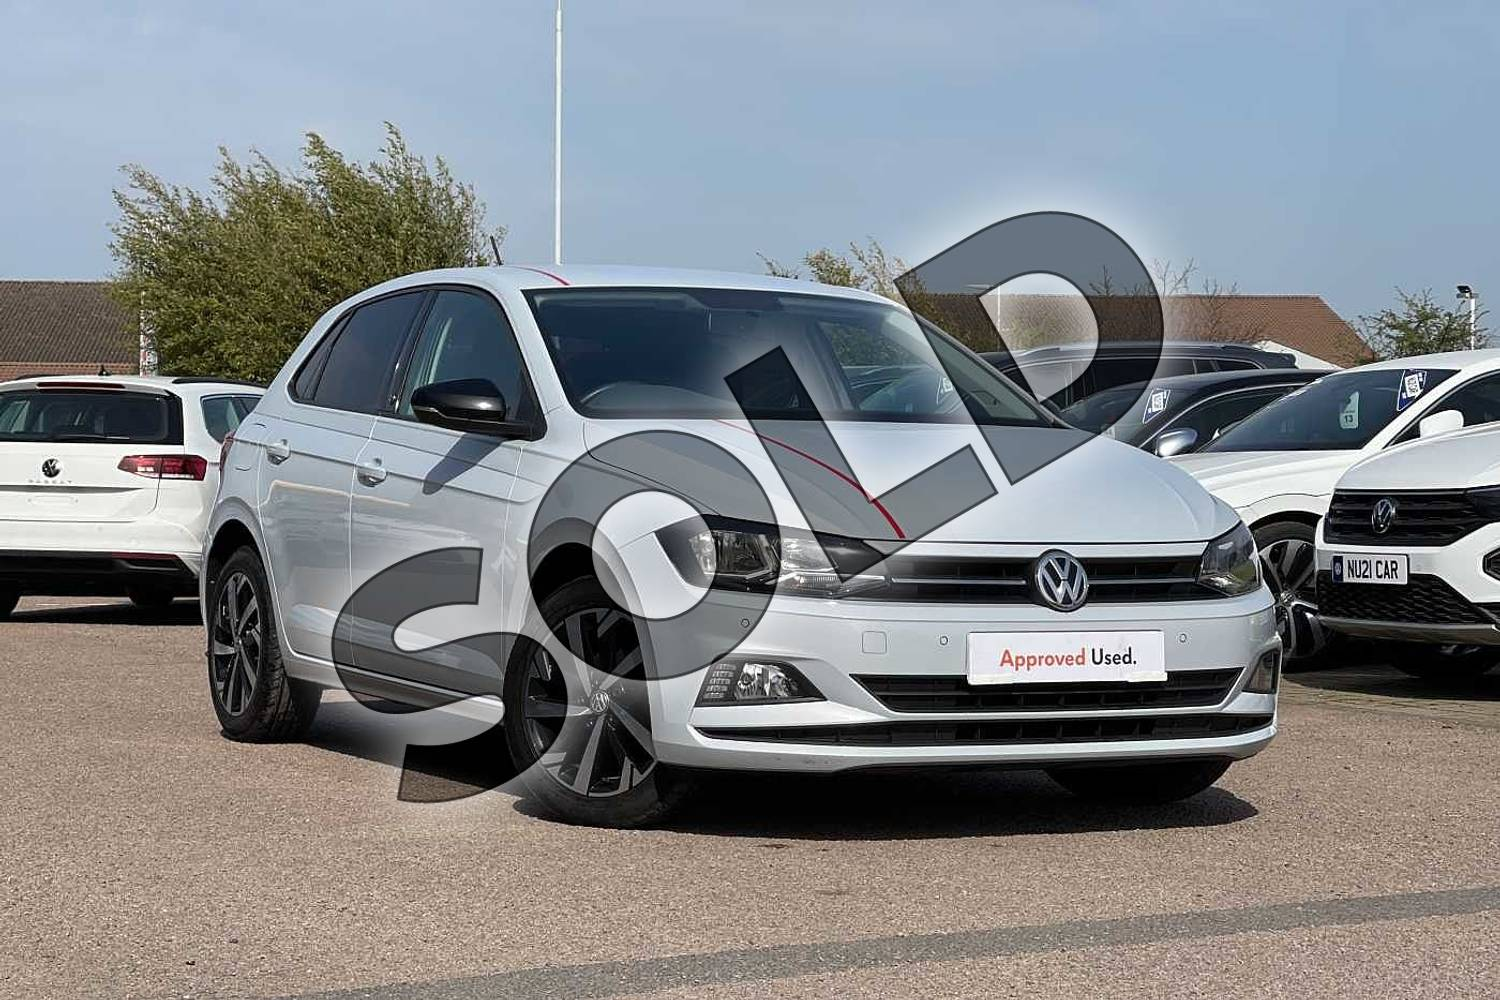 2018 Volkswagen Polo Hatchback 1.0 TSI 95 Beats 5dr in White Silver at Listers Volkswagen Loughborough